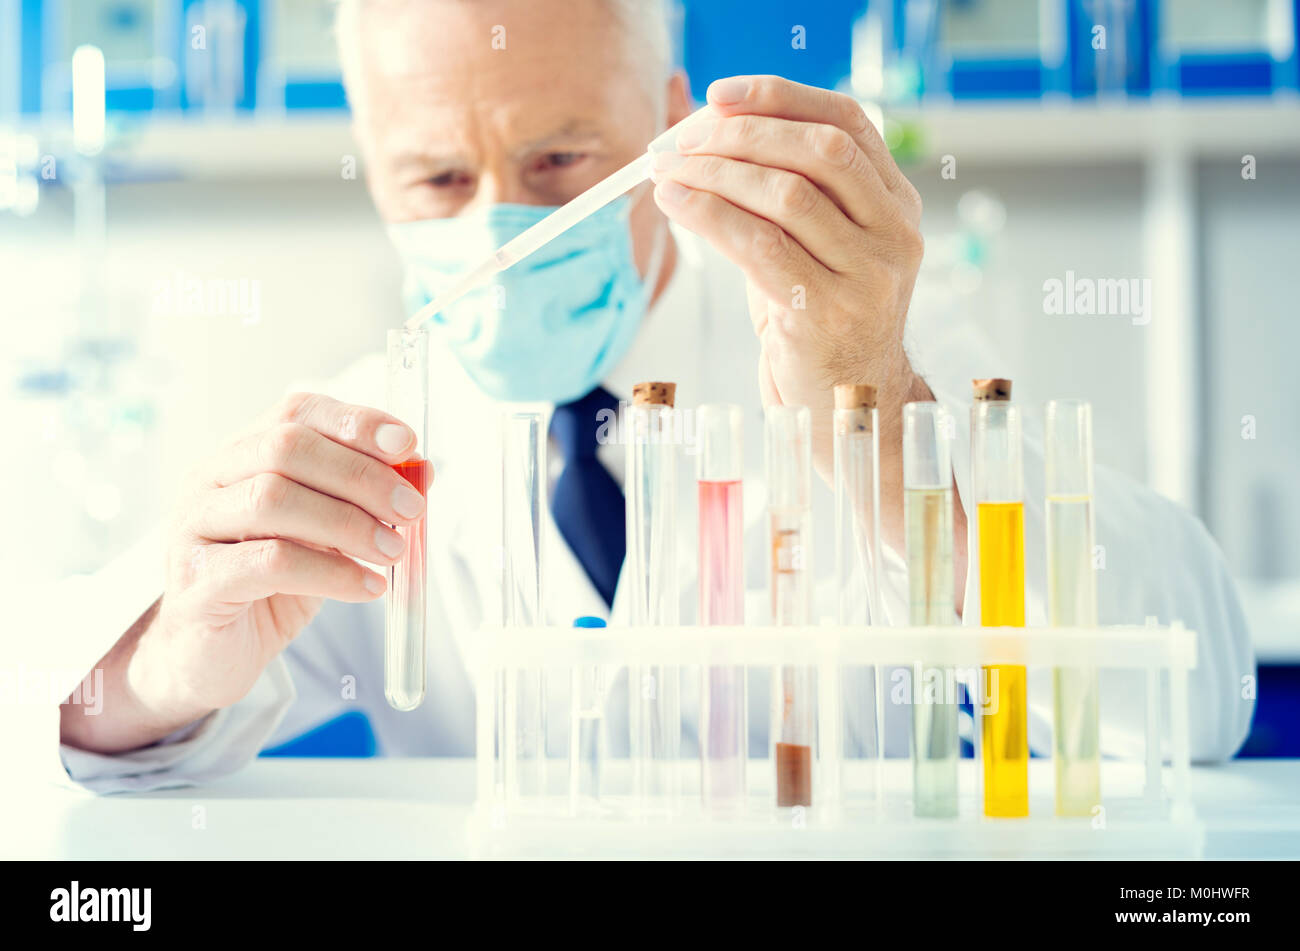 Close up of man pouring chemical liquid into test tube - Stock Image